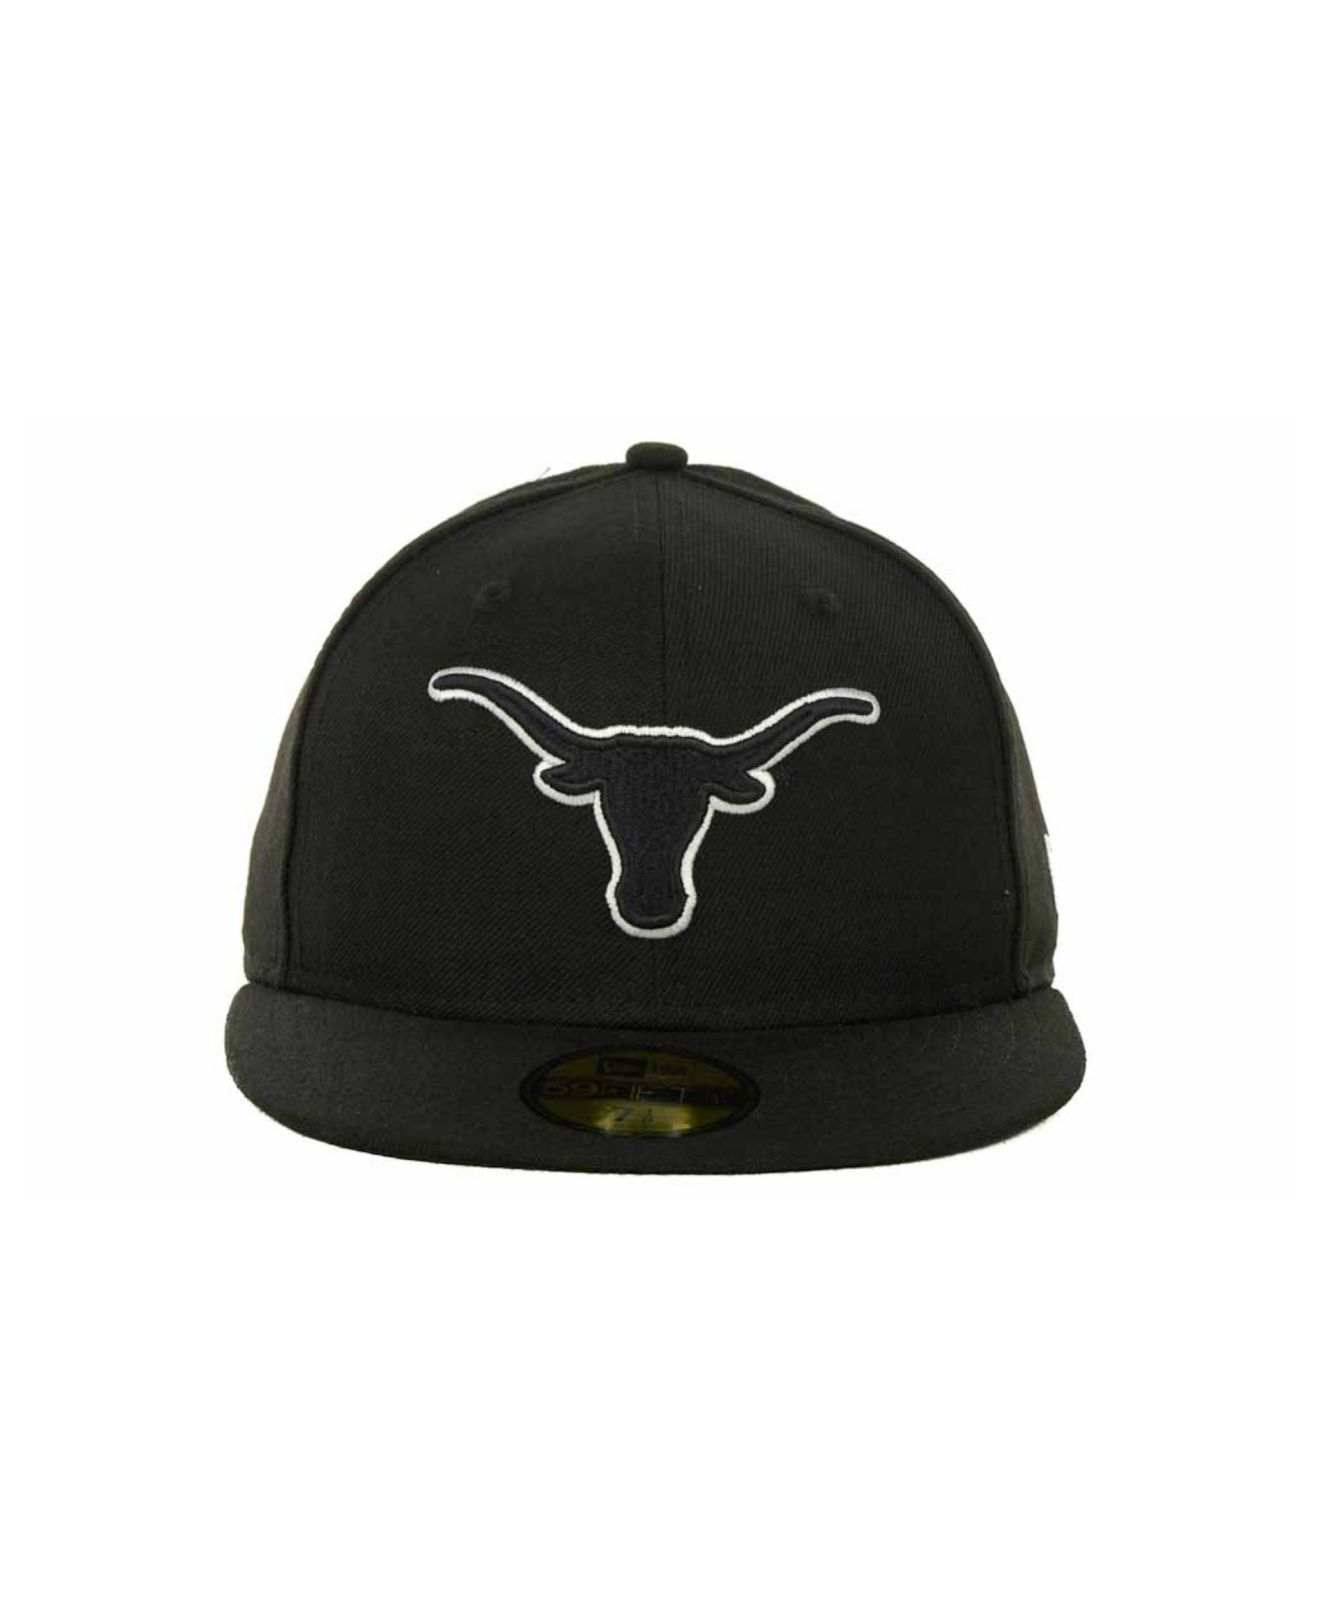 size 40 7902d f258b ... store lyst ktz texas longhorns black on black with white 59fifty cap in  6c171 23338